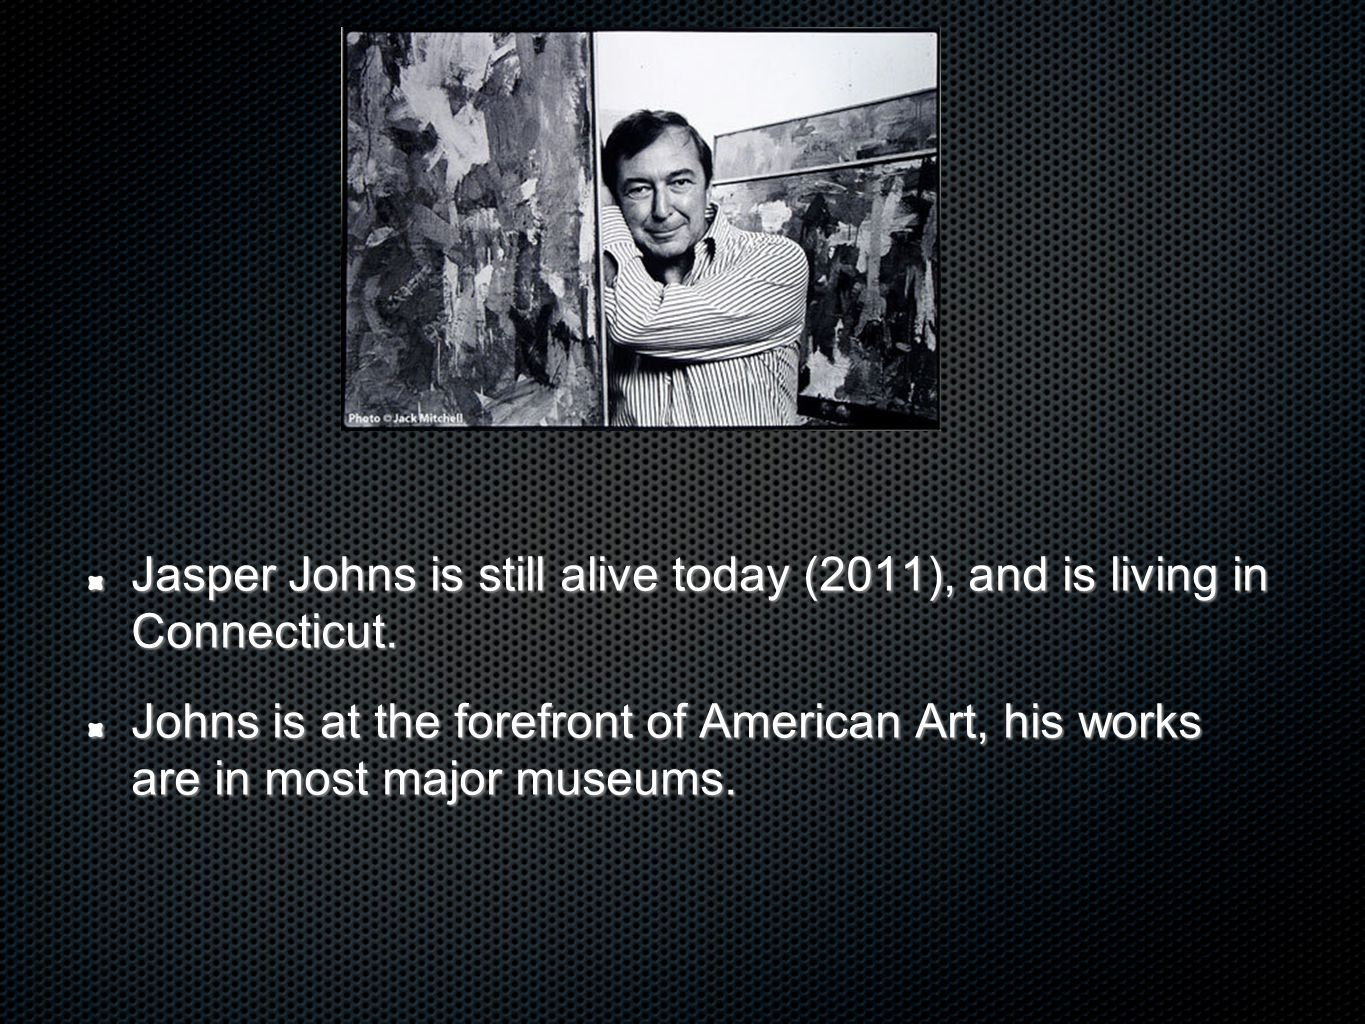 Jasper Johns is still alive today (2011), and is living in Connecticut.